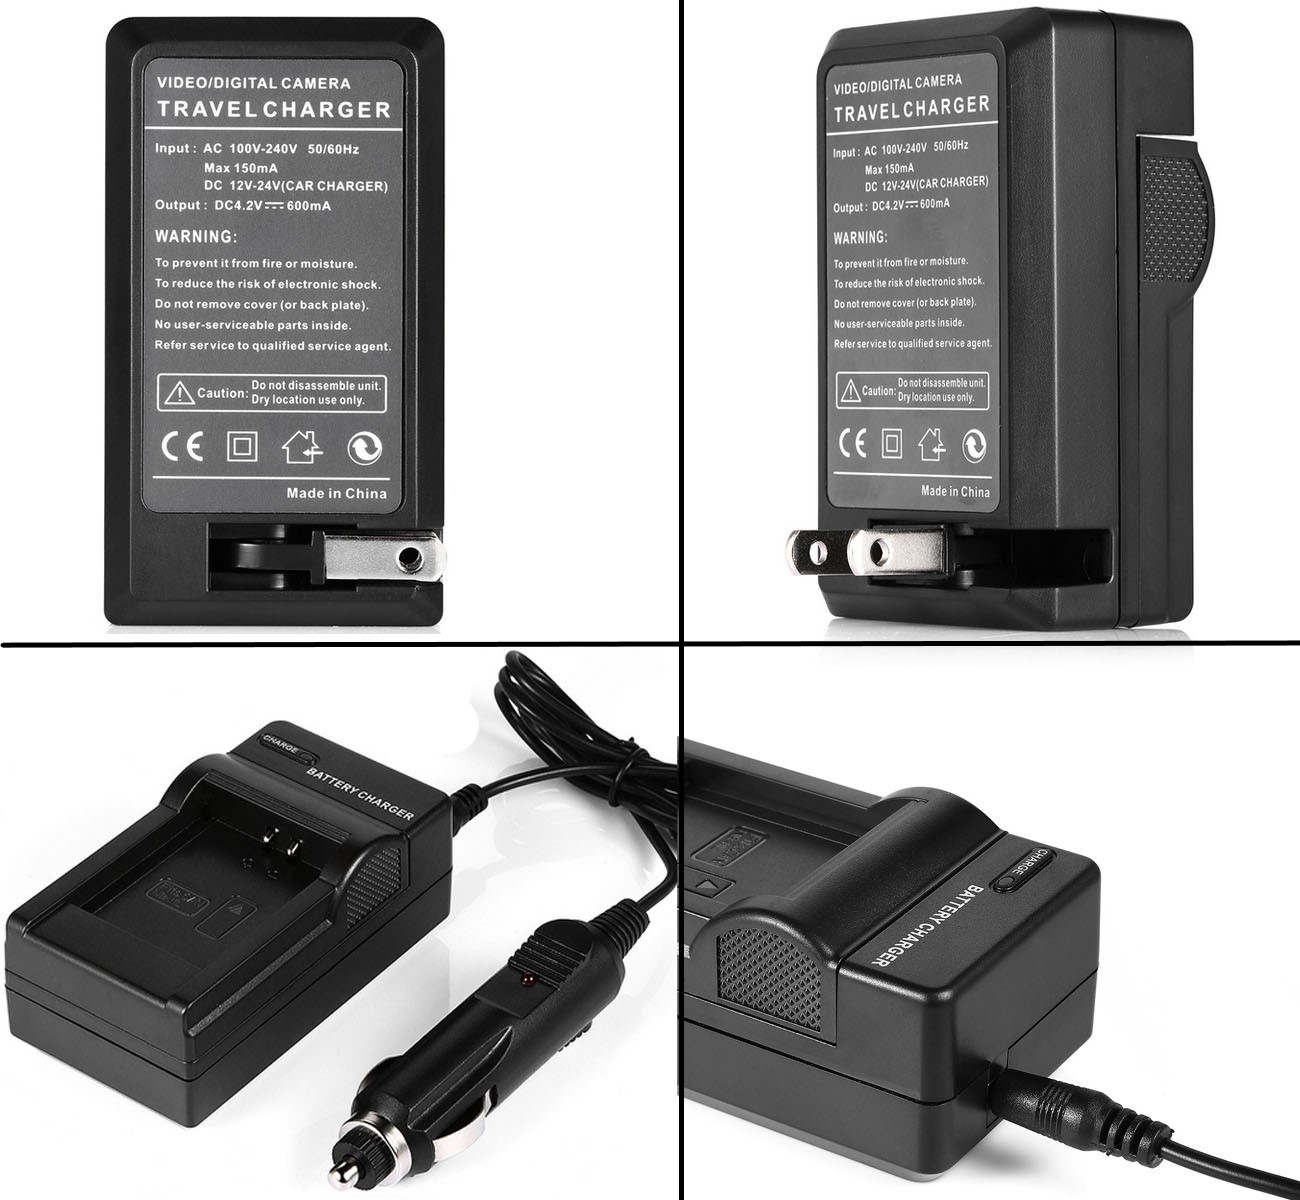 MAIN CAR CHARGER FOR PENTAX OPTIO WG1 WG-1